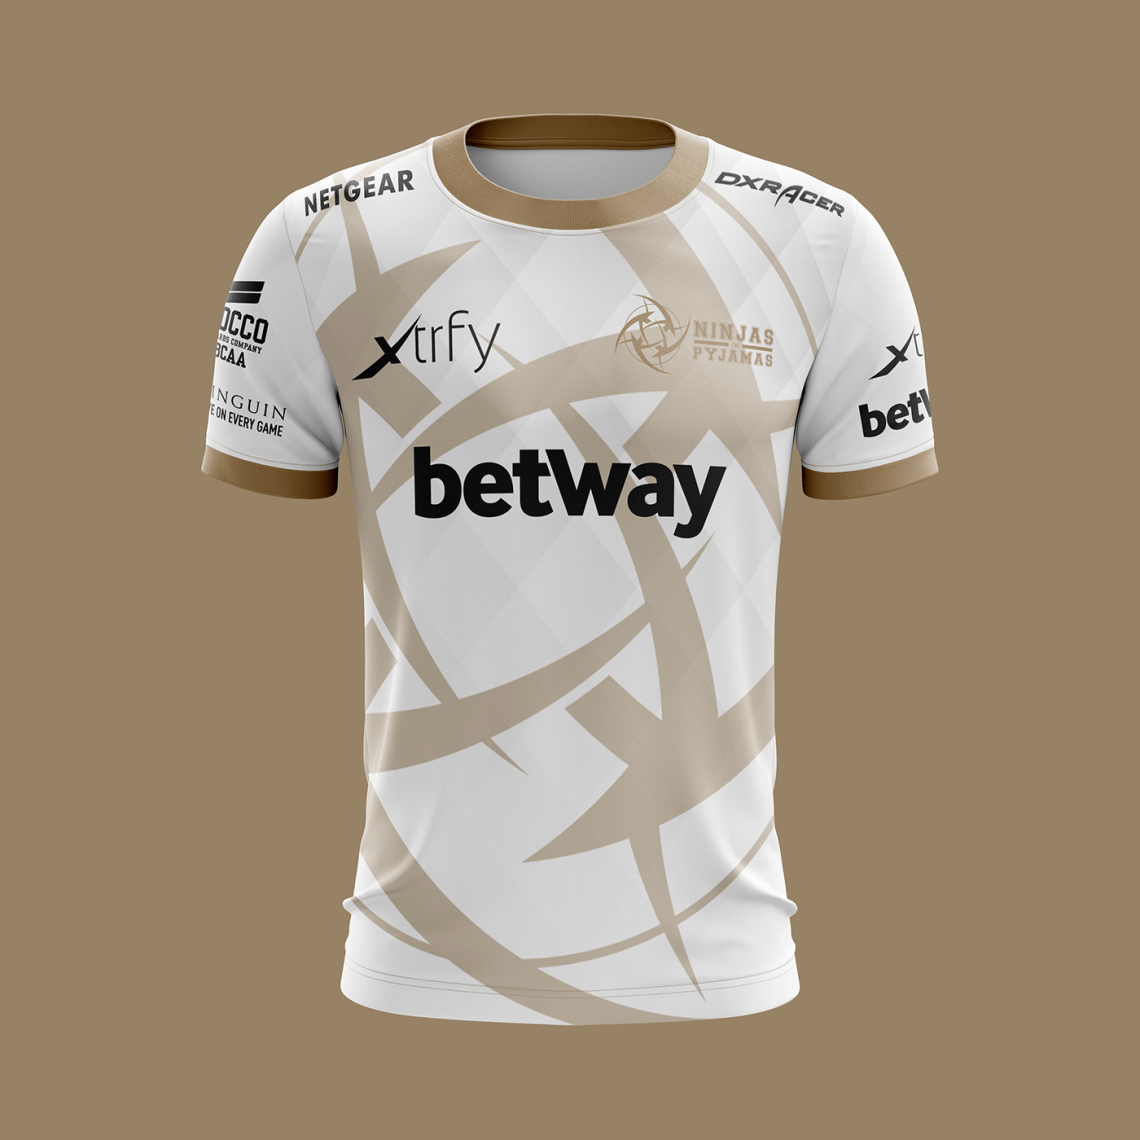 Download Esports Jersey Mockups on Behance